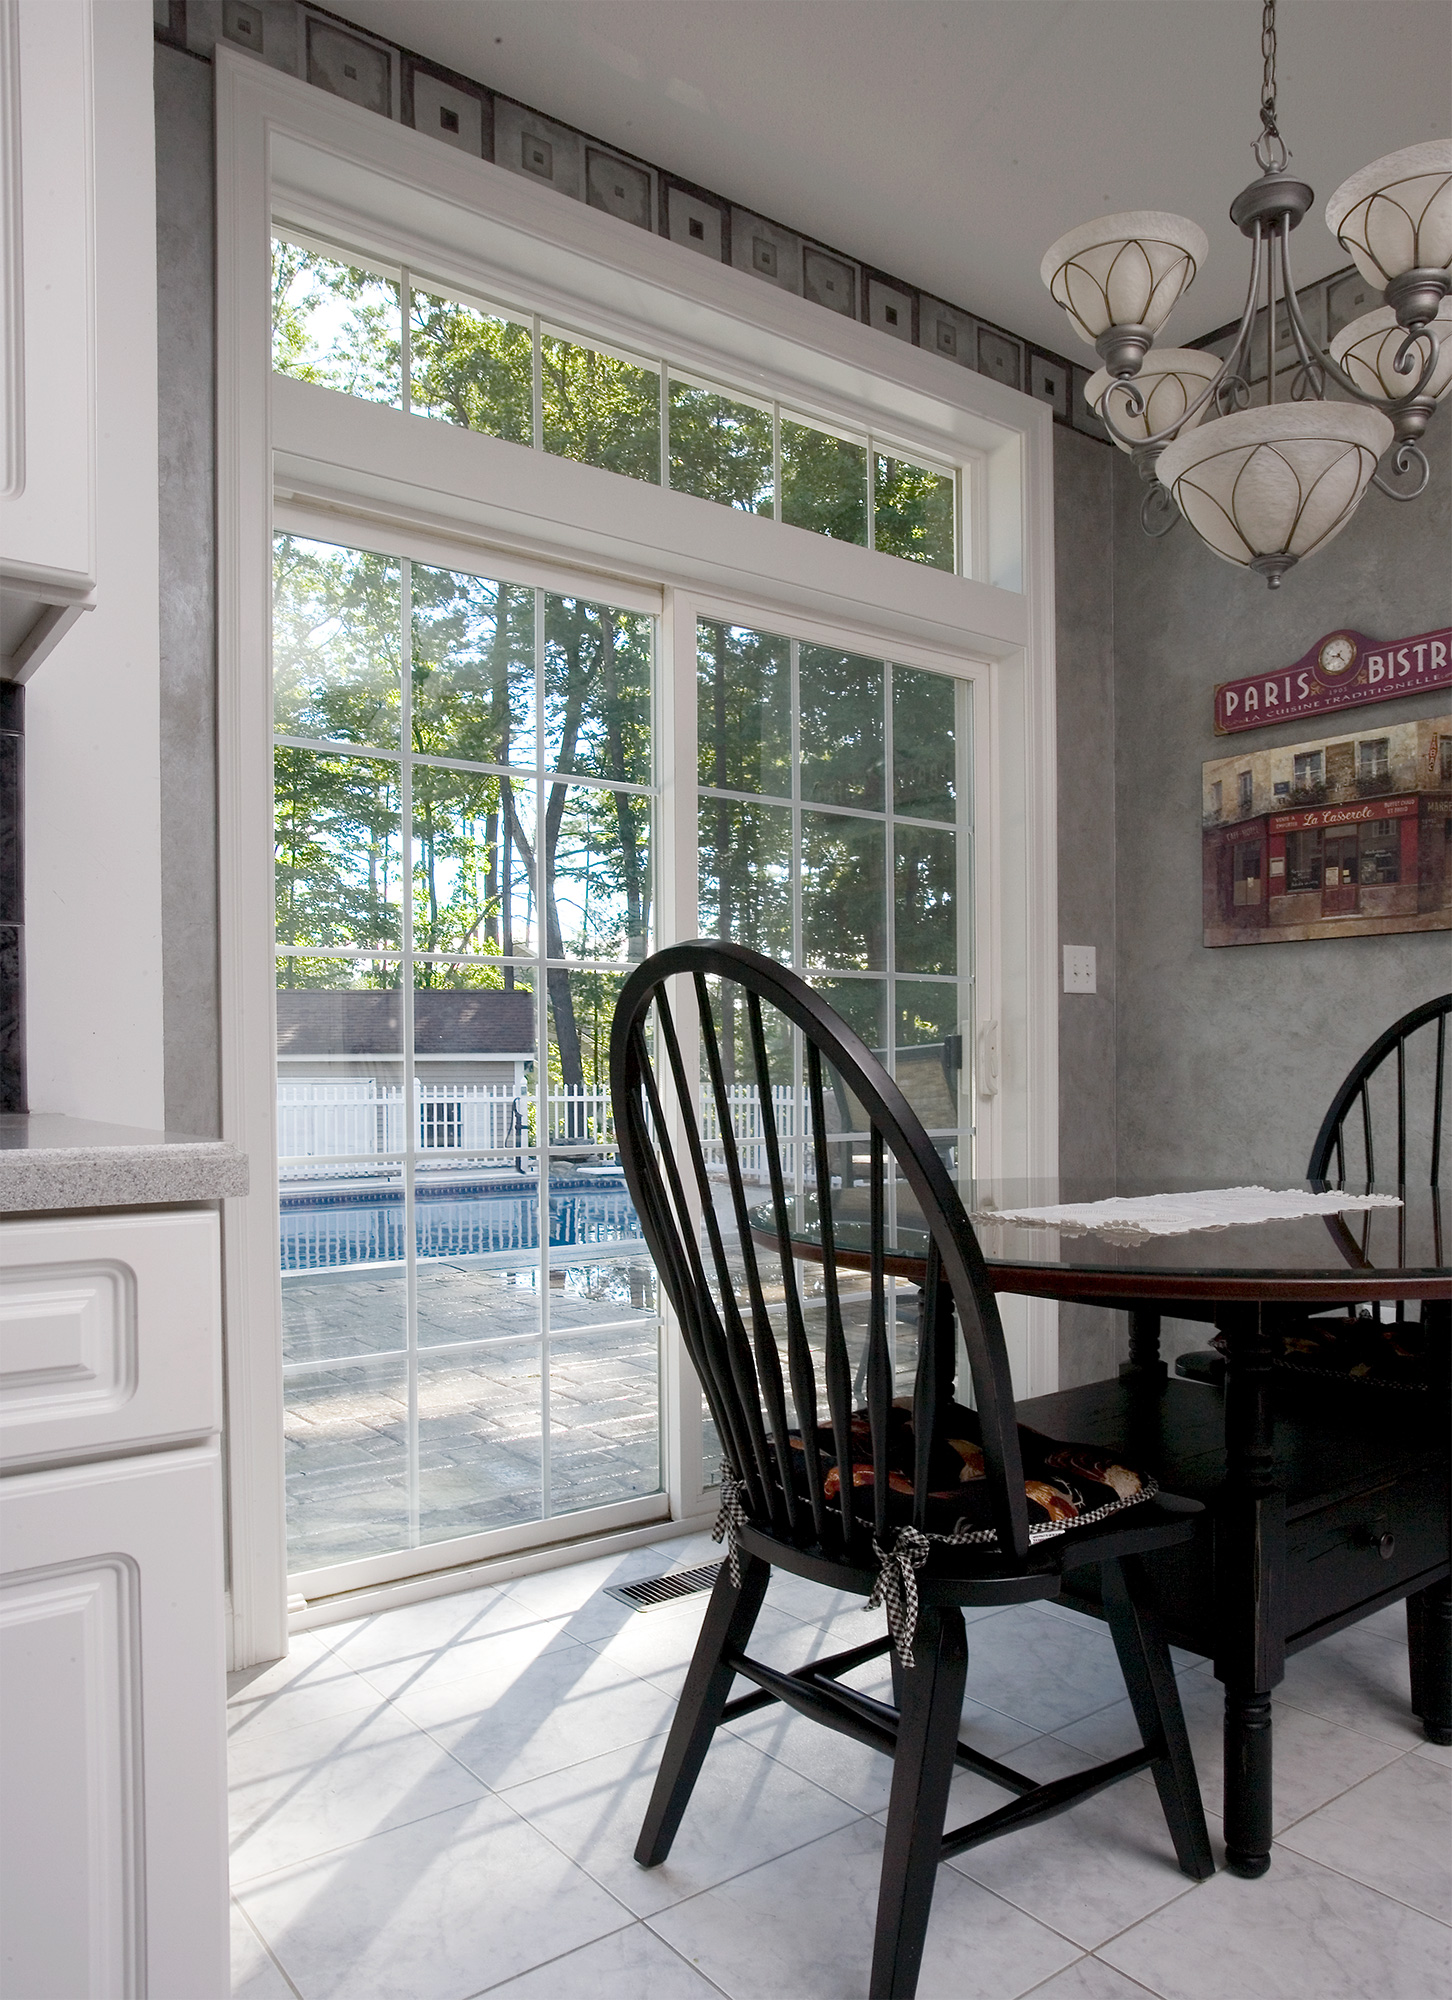 weatherbarr-Pinnacle-patio-door-transom-interior-1.jpg